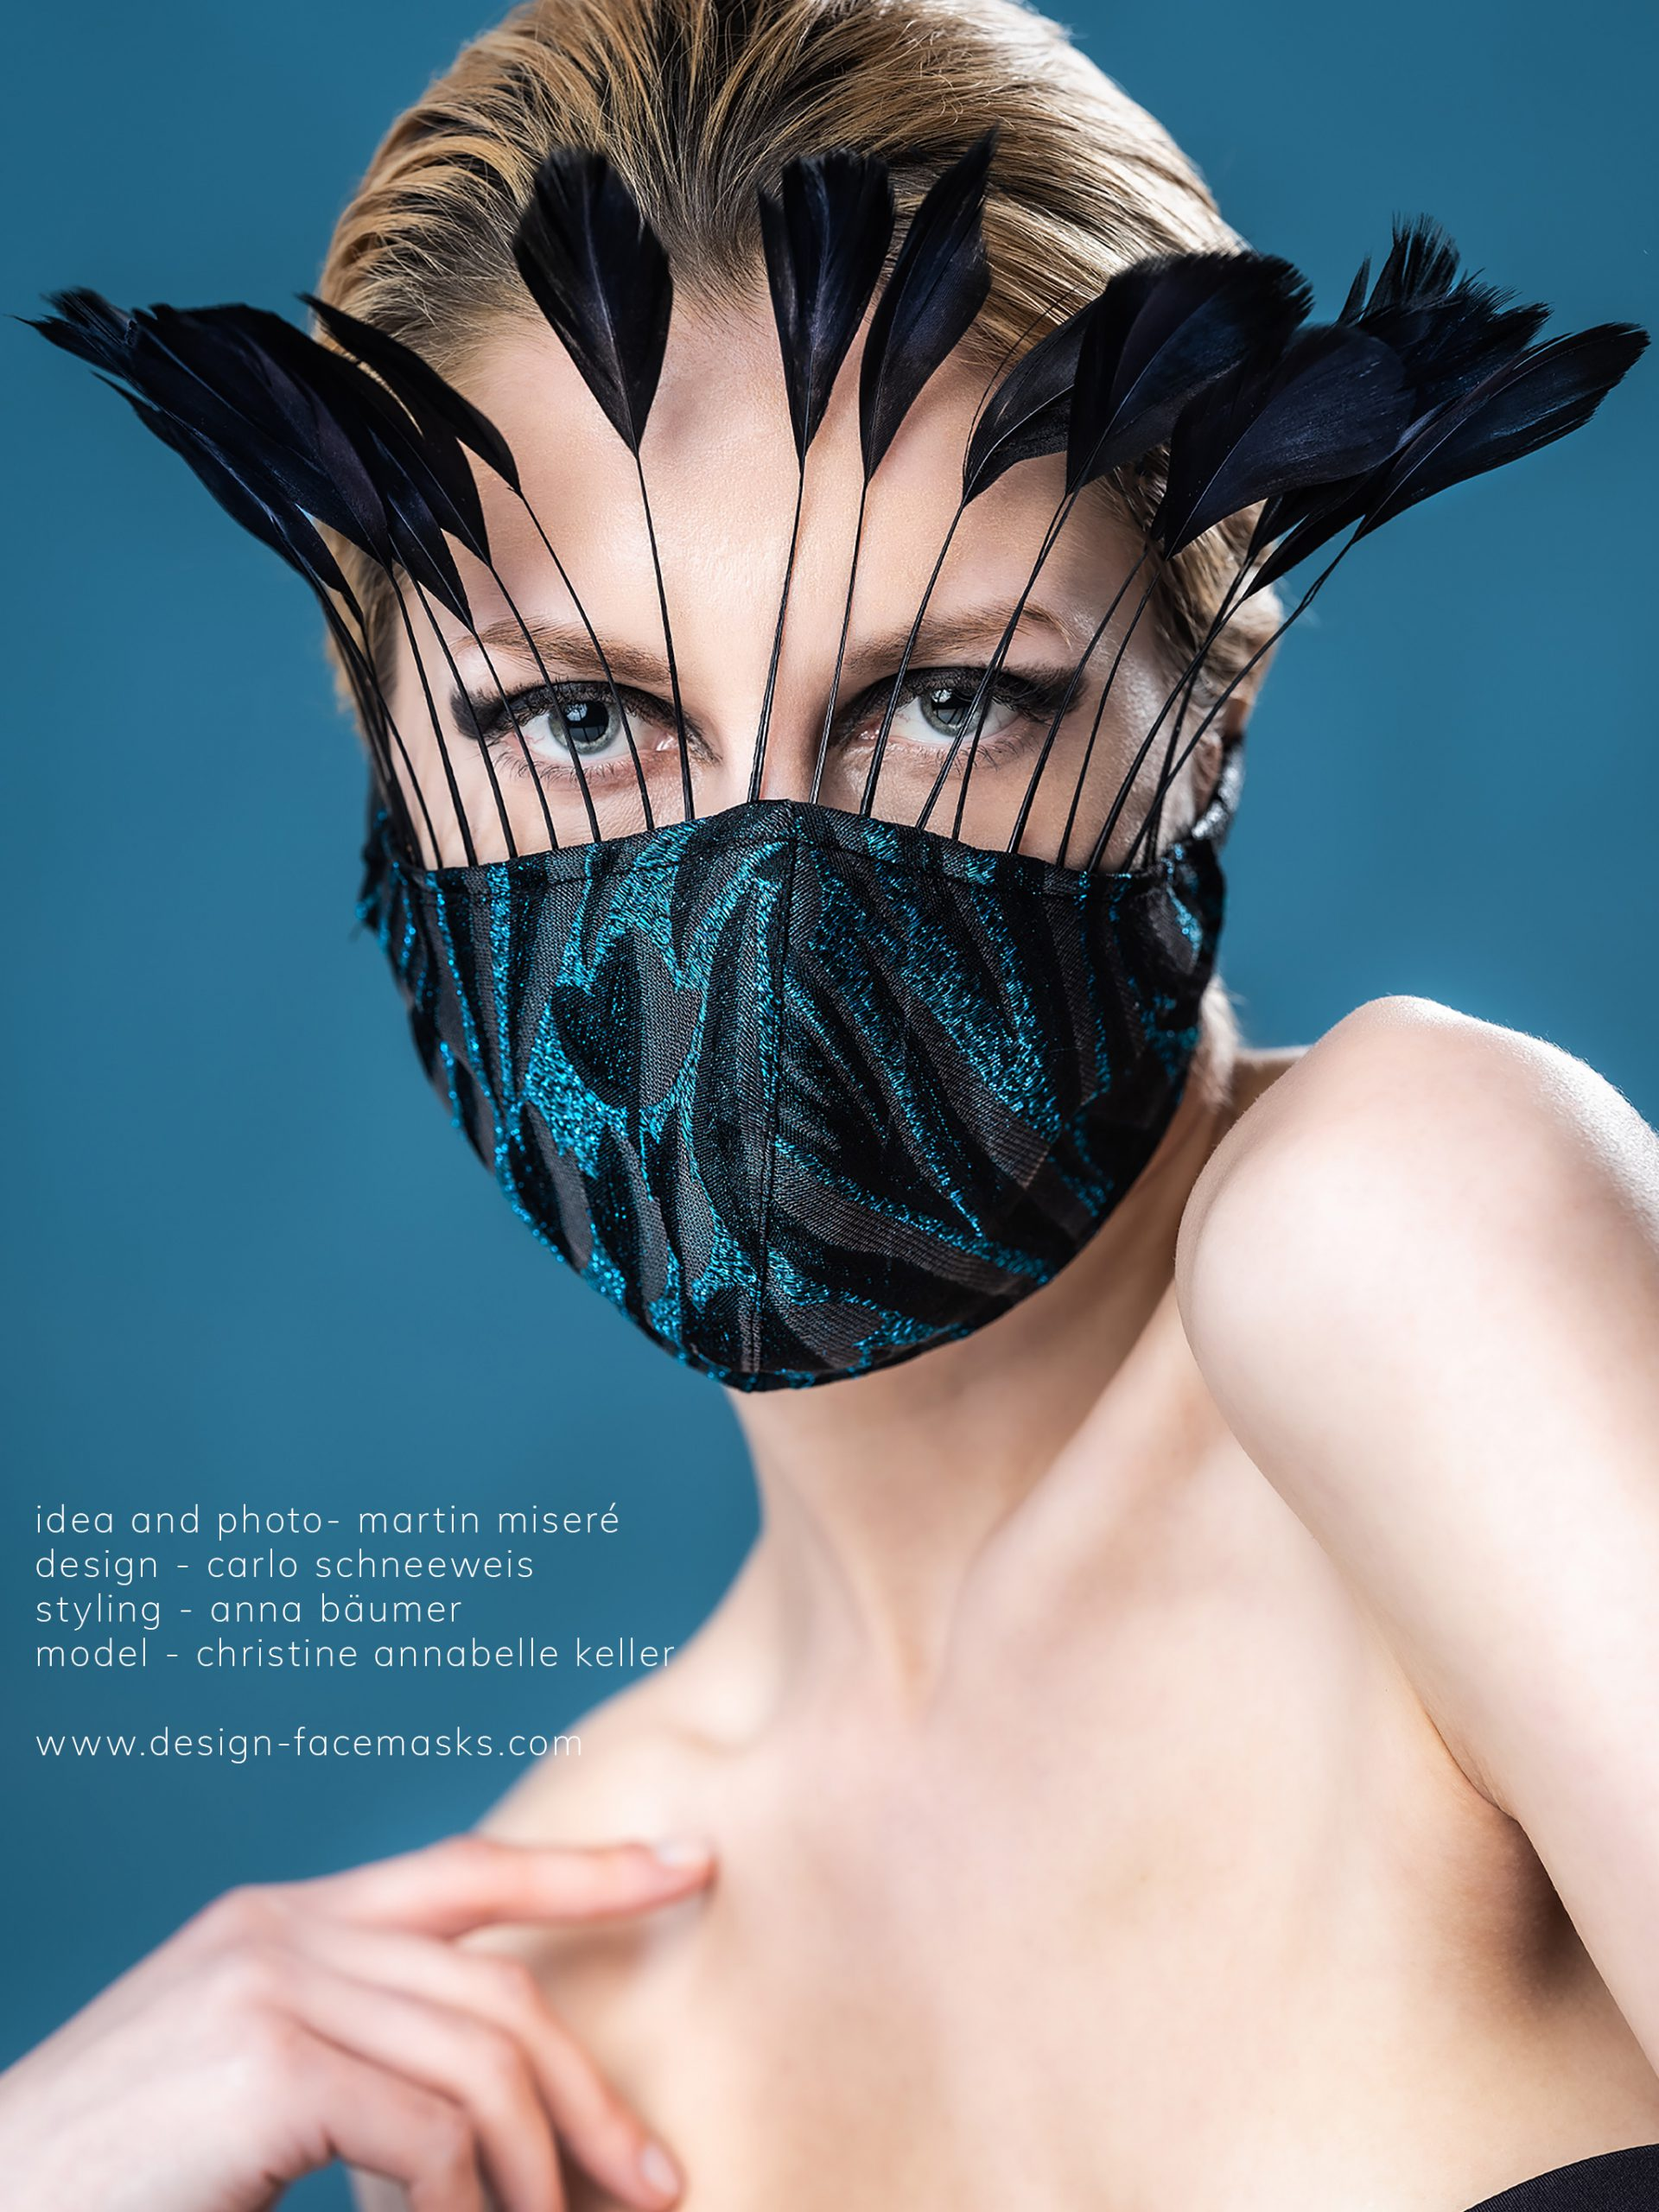 Design Facemask Model Christine Annabelle Keller wearing facemask of fashion designer Carlo Schneeweis photographed by Martin Misere